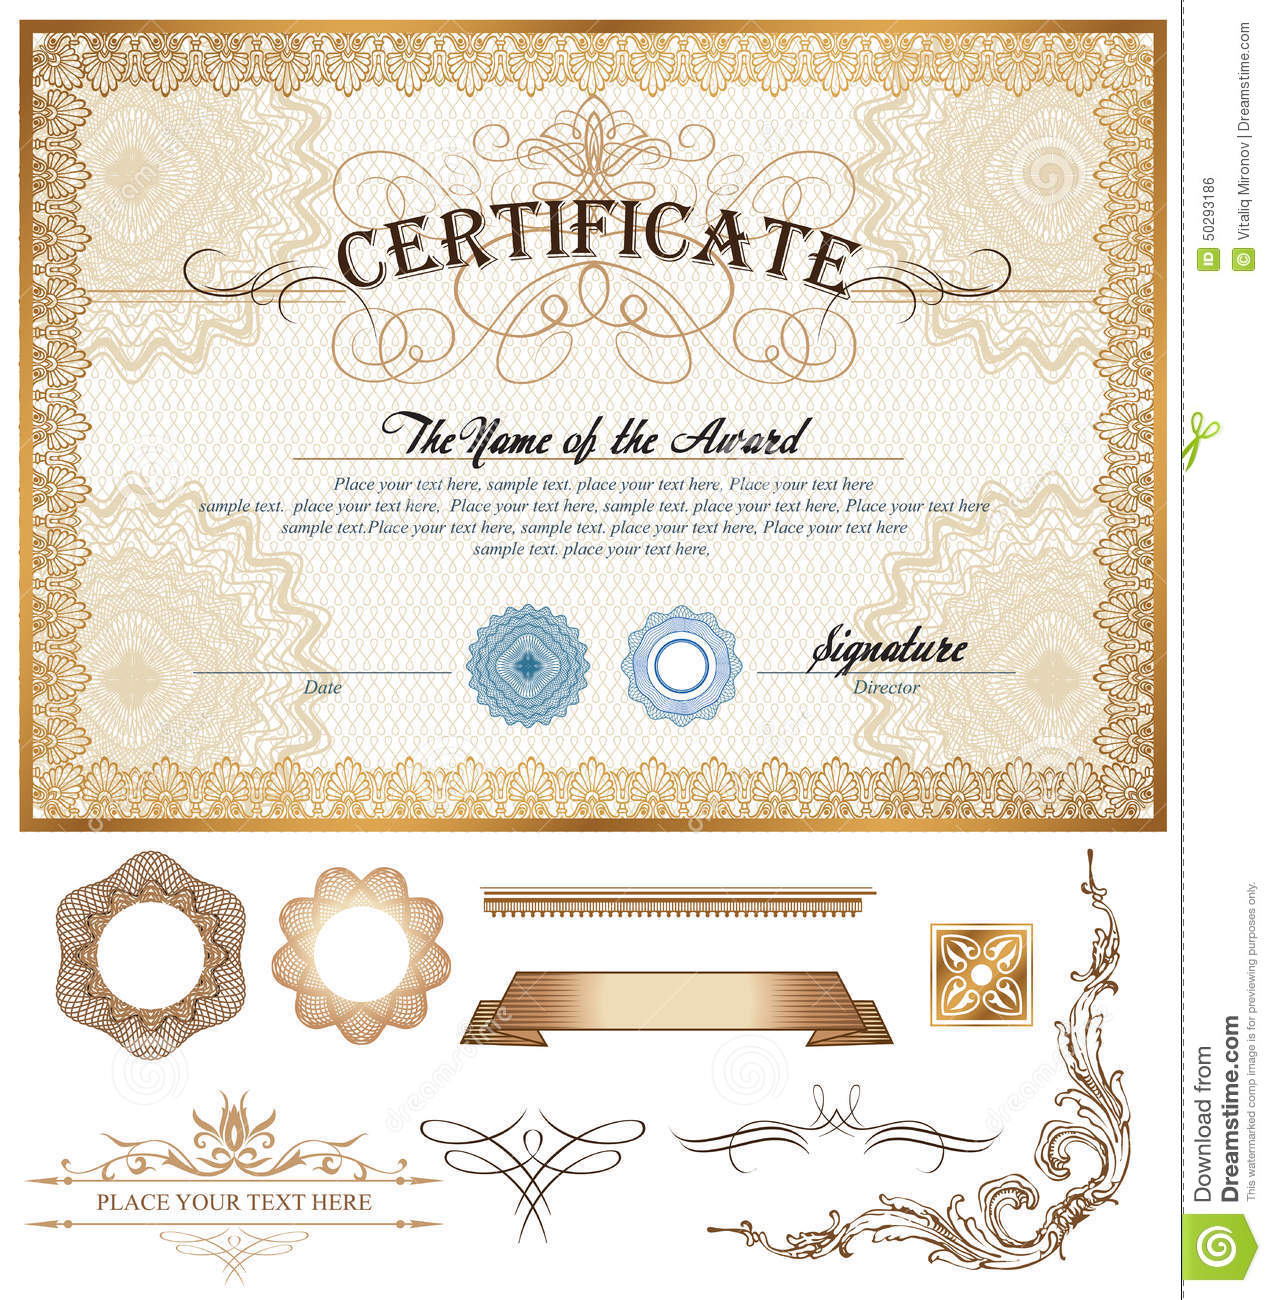 Certificate Or Coupon Template With Vintage Border Stock ...